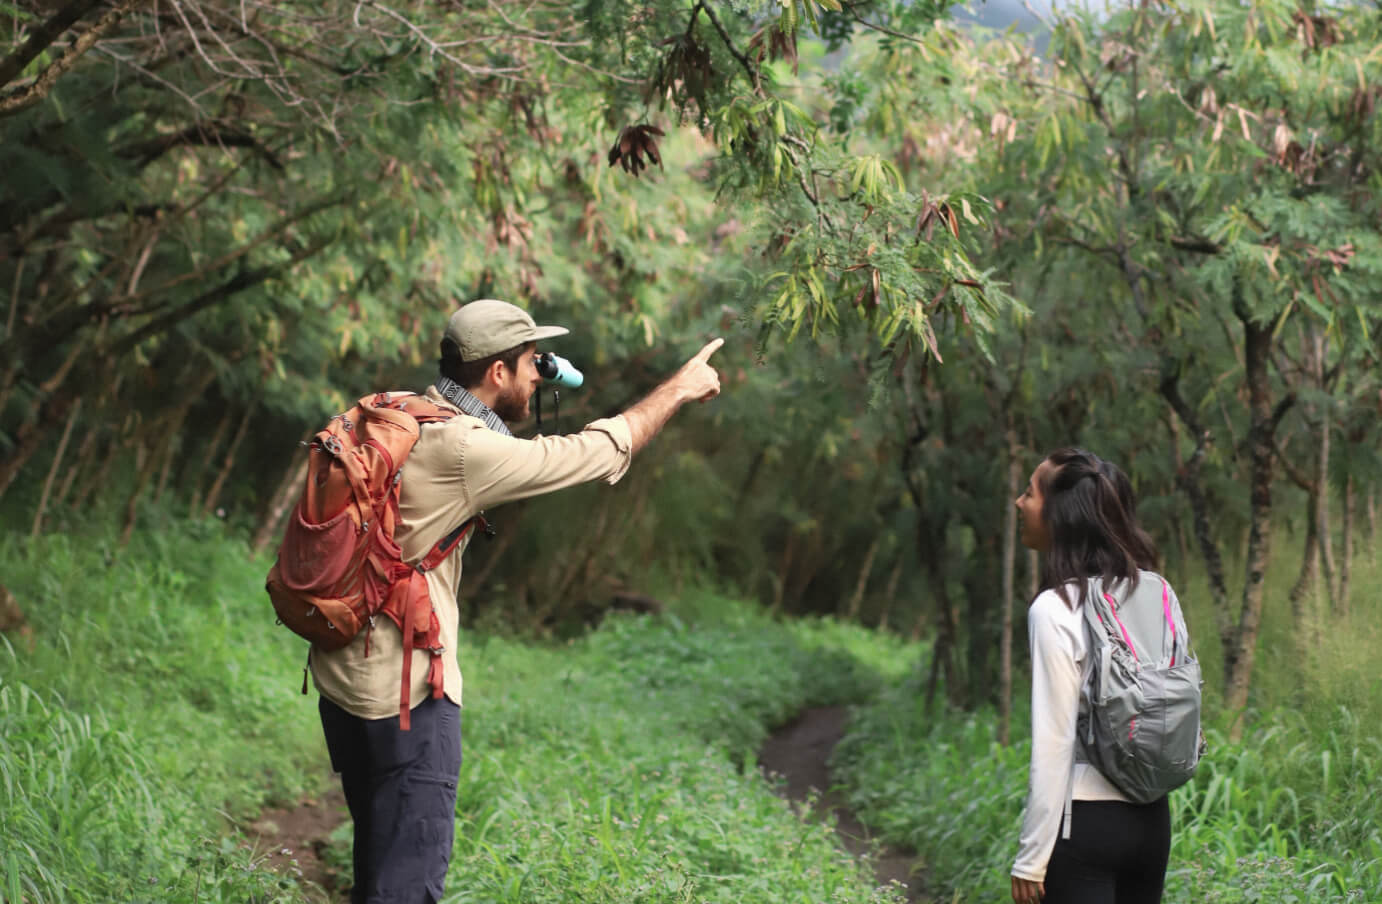 Peter Thoene pointing something out in a forest to a girl, while holding Nocs